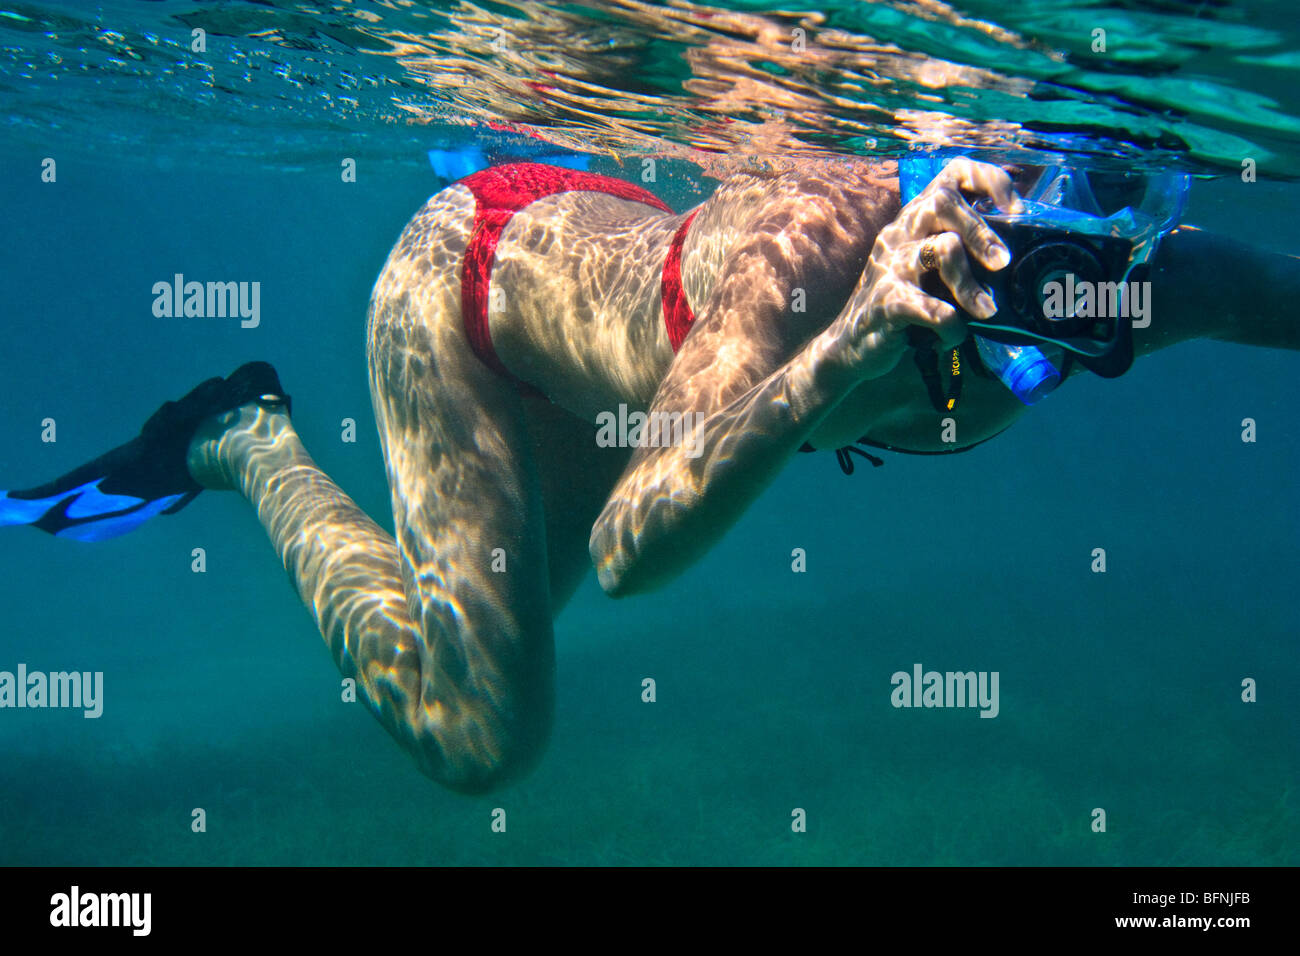 Young woman snorkeling and taking pictures underwater Stock Photo